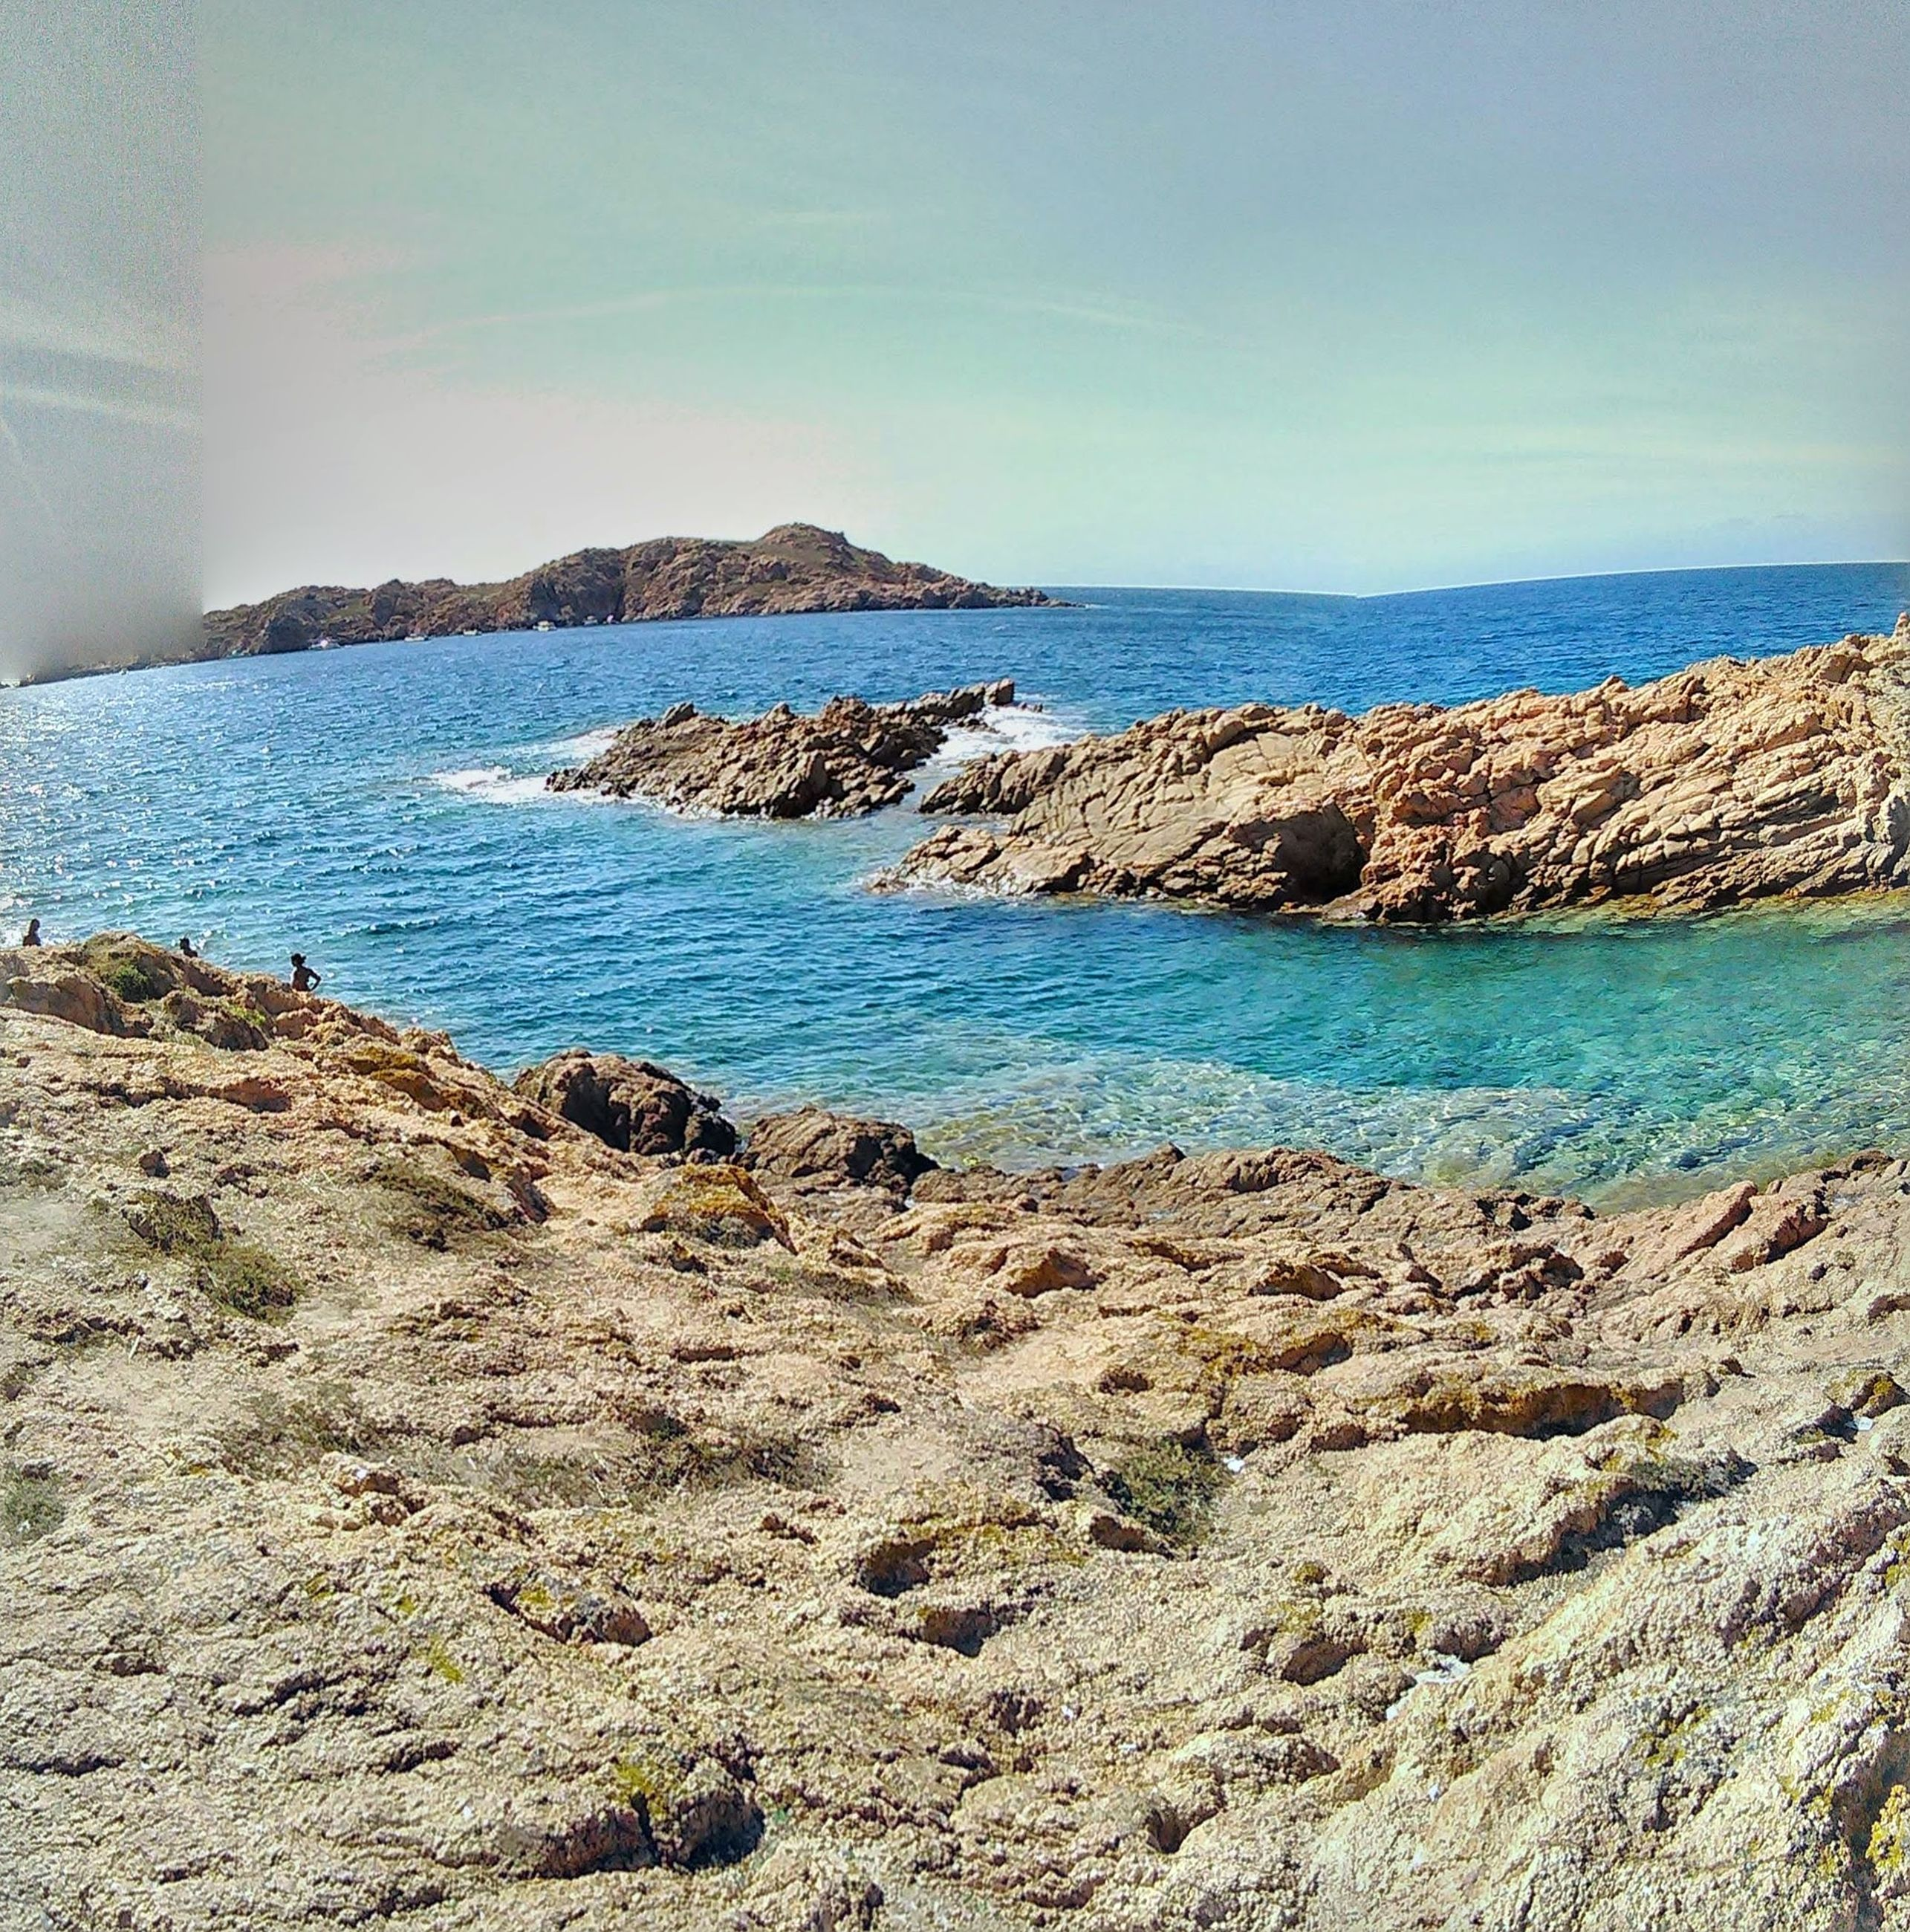 sea, water, horizon over water, beach, tranquil scene, tranquility, scenics, blue, shore, sky, beauty in nature, nature, sand, coastline, idyllic, rock - object, day, calm, outdoors, remote